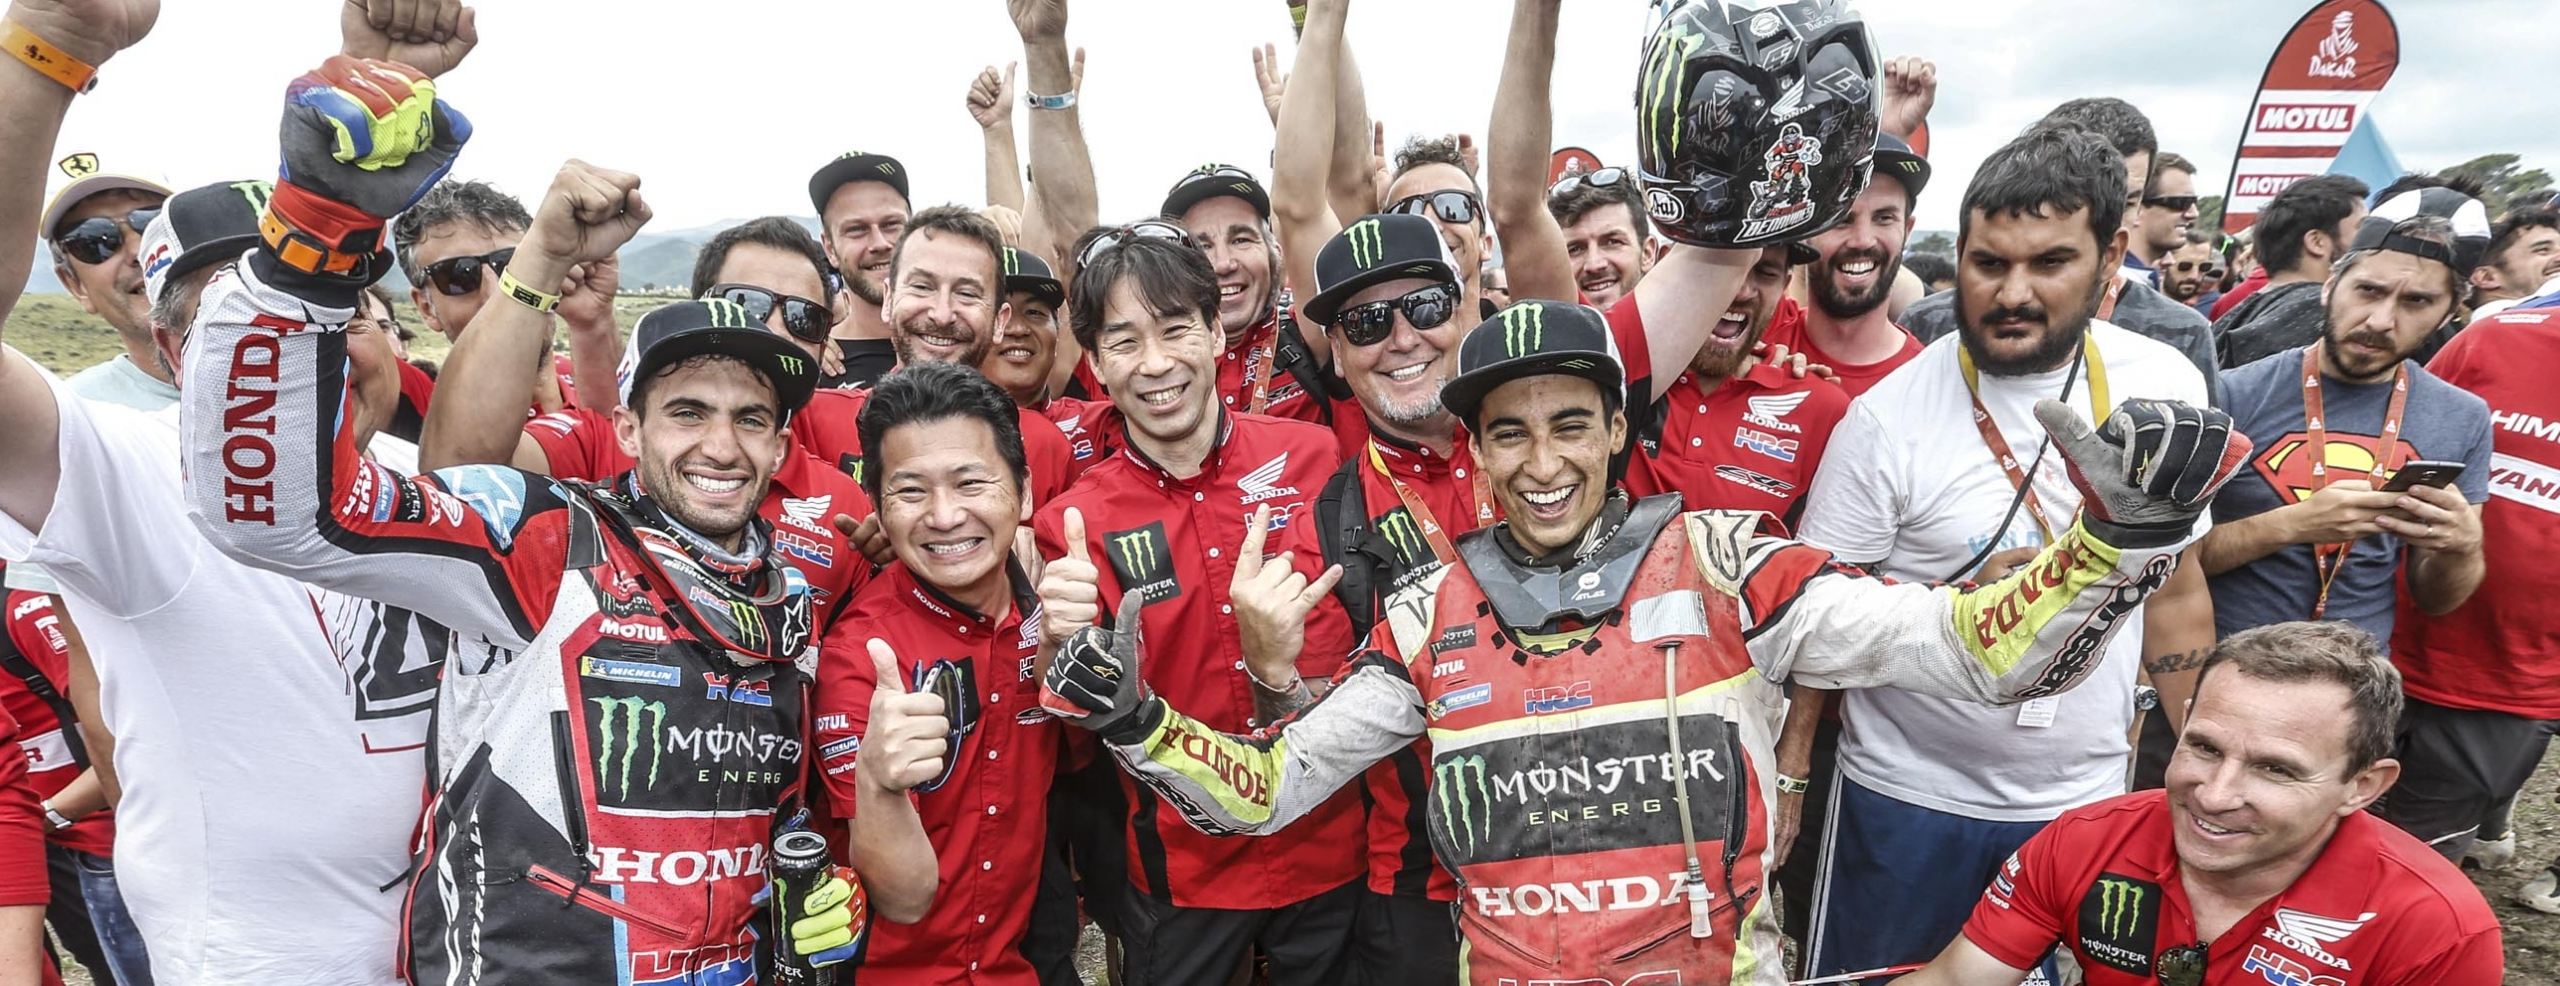 Monster Energy Honda Team achieves second place in the Rally Dakar with Kevin Benavides